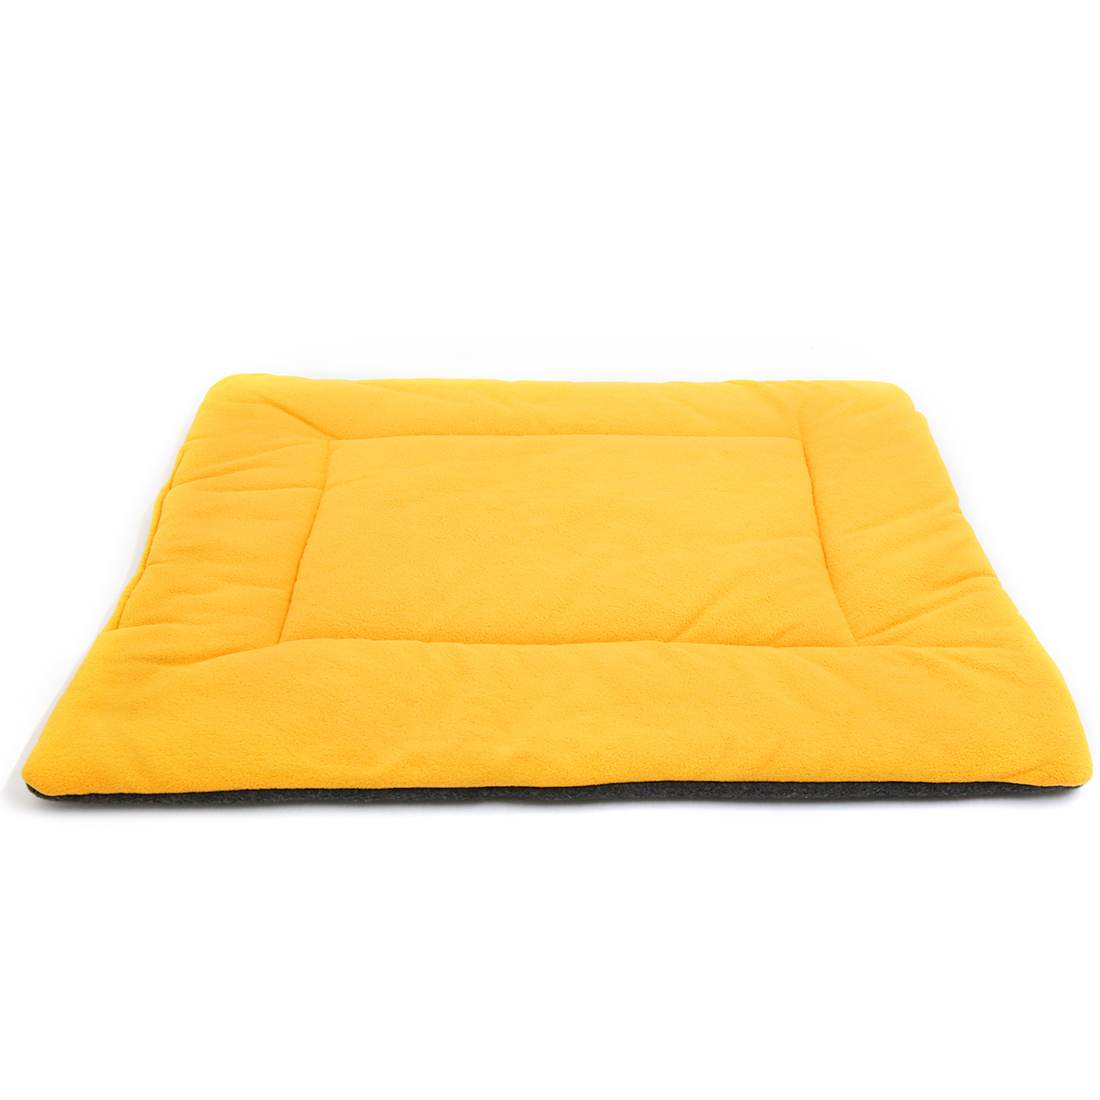 Fleece Reversible Mat Cushion Pad Bed for Dog Cat Puppy Pet Yellow M